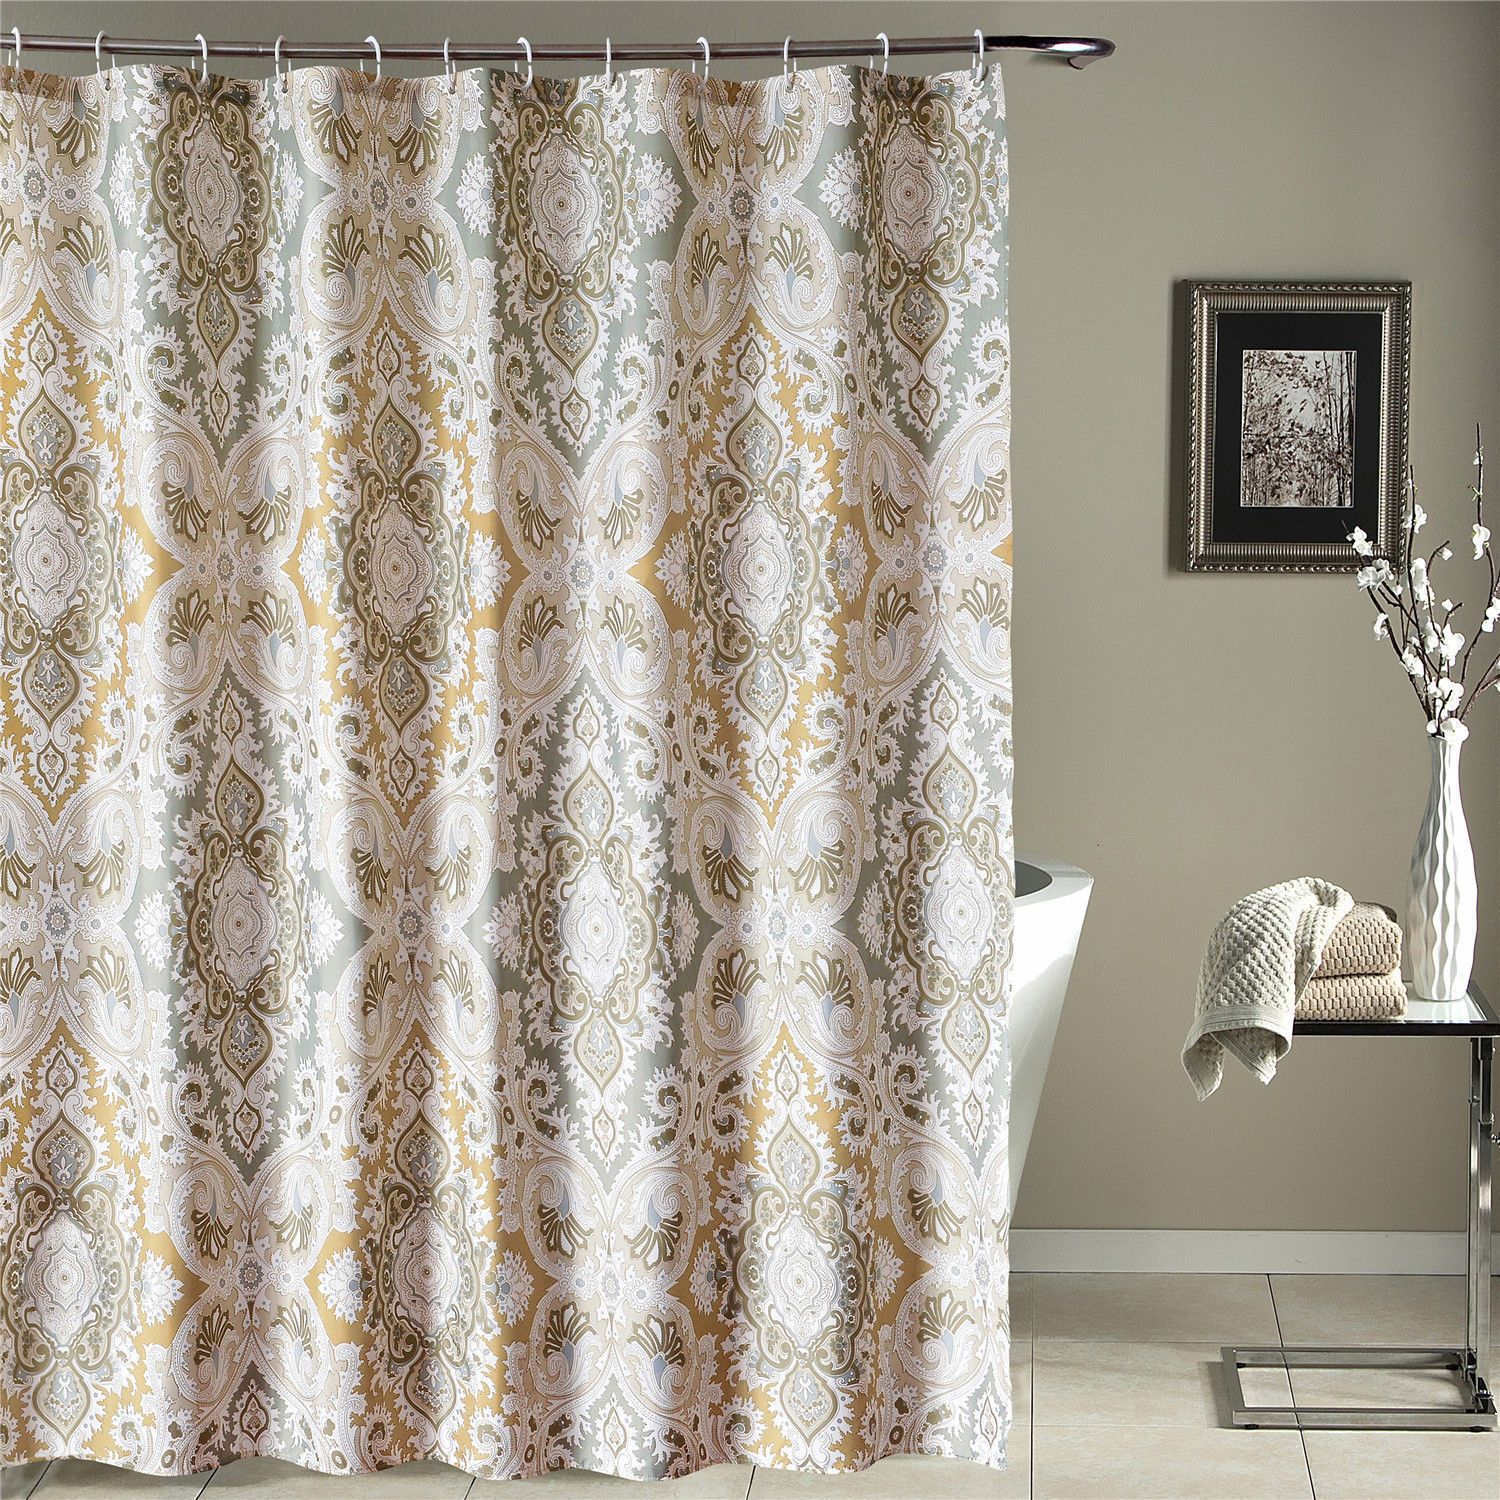 Details About High Quality Fabric Cloth Shower Curtain Blue